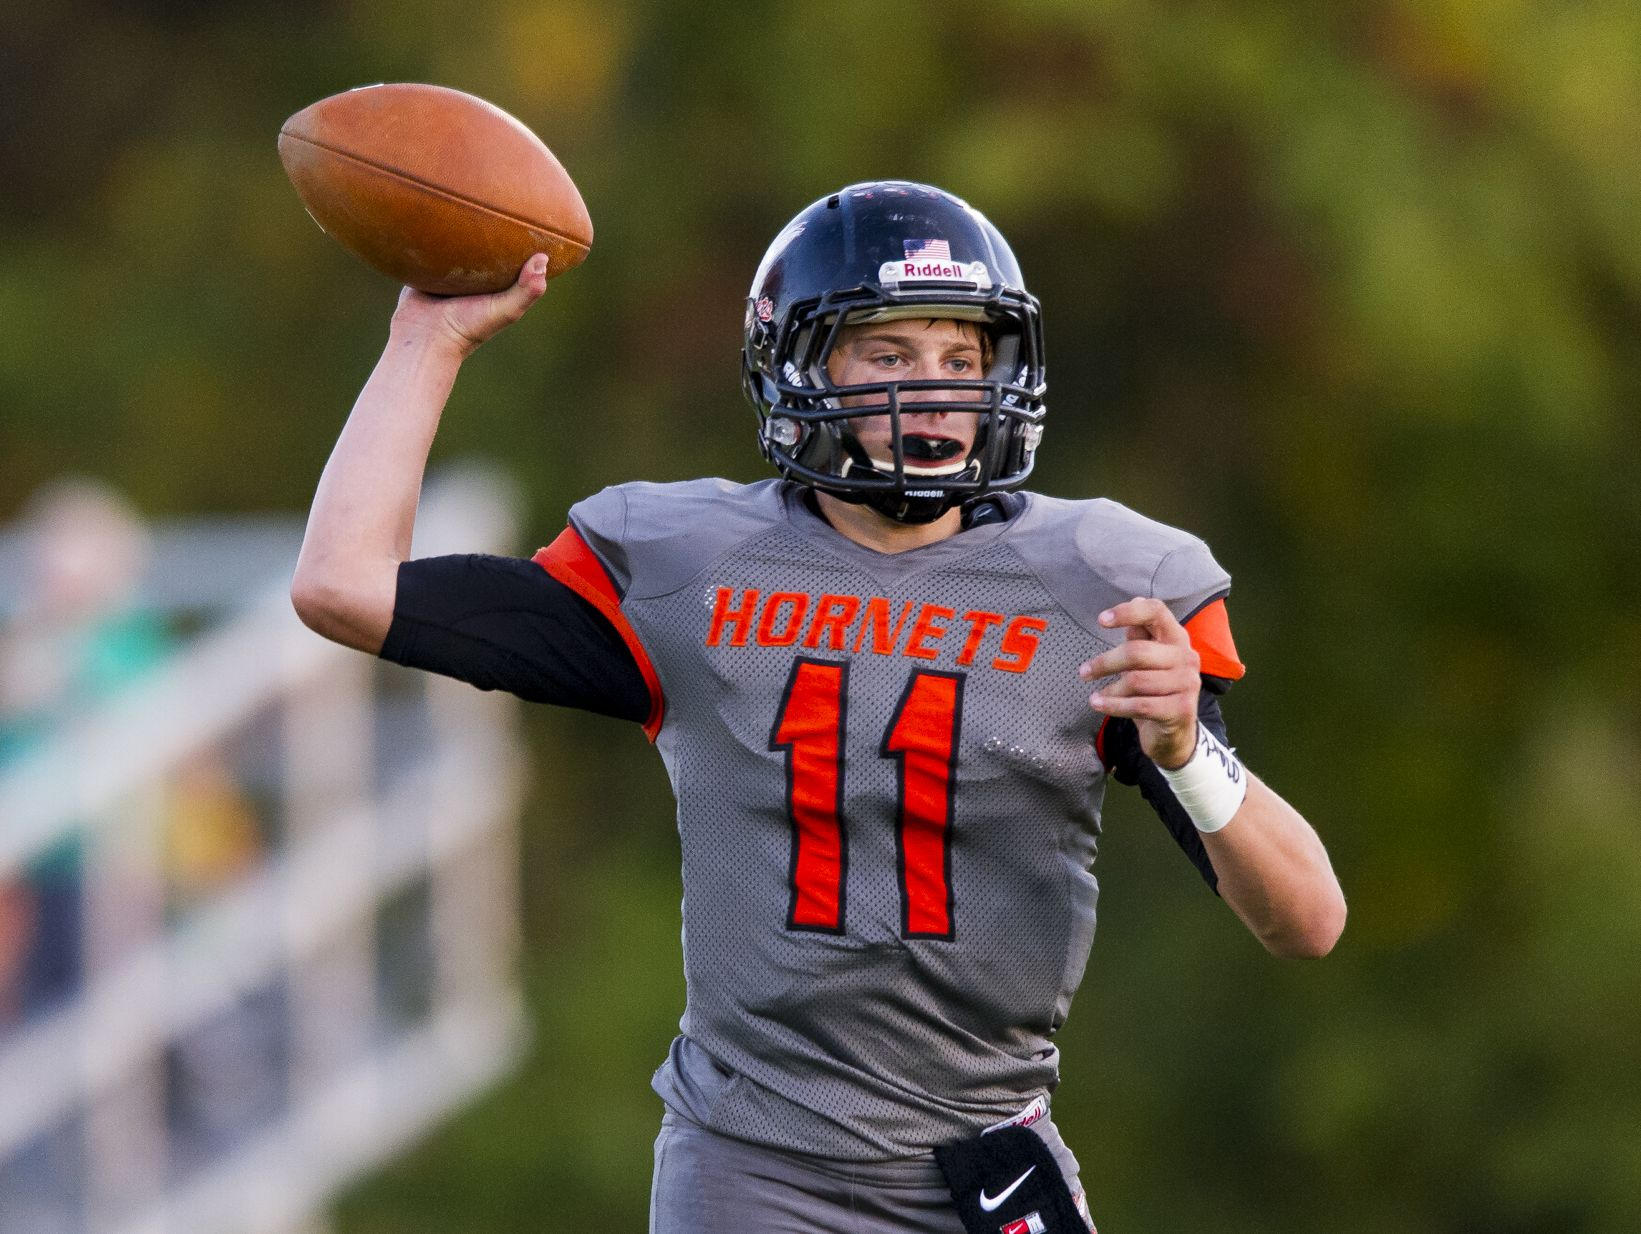 Beech Grove's Chase Andries threw for 420 yards and five touchdowns in the Hornets' 49-21 win over Mooresville.